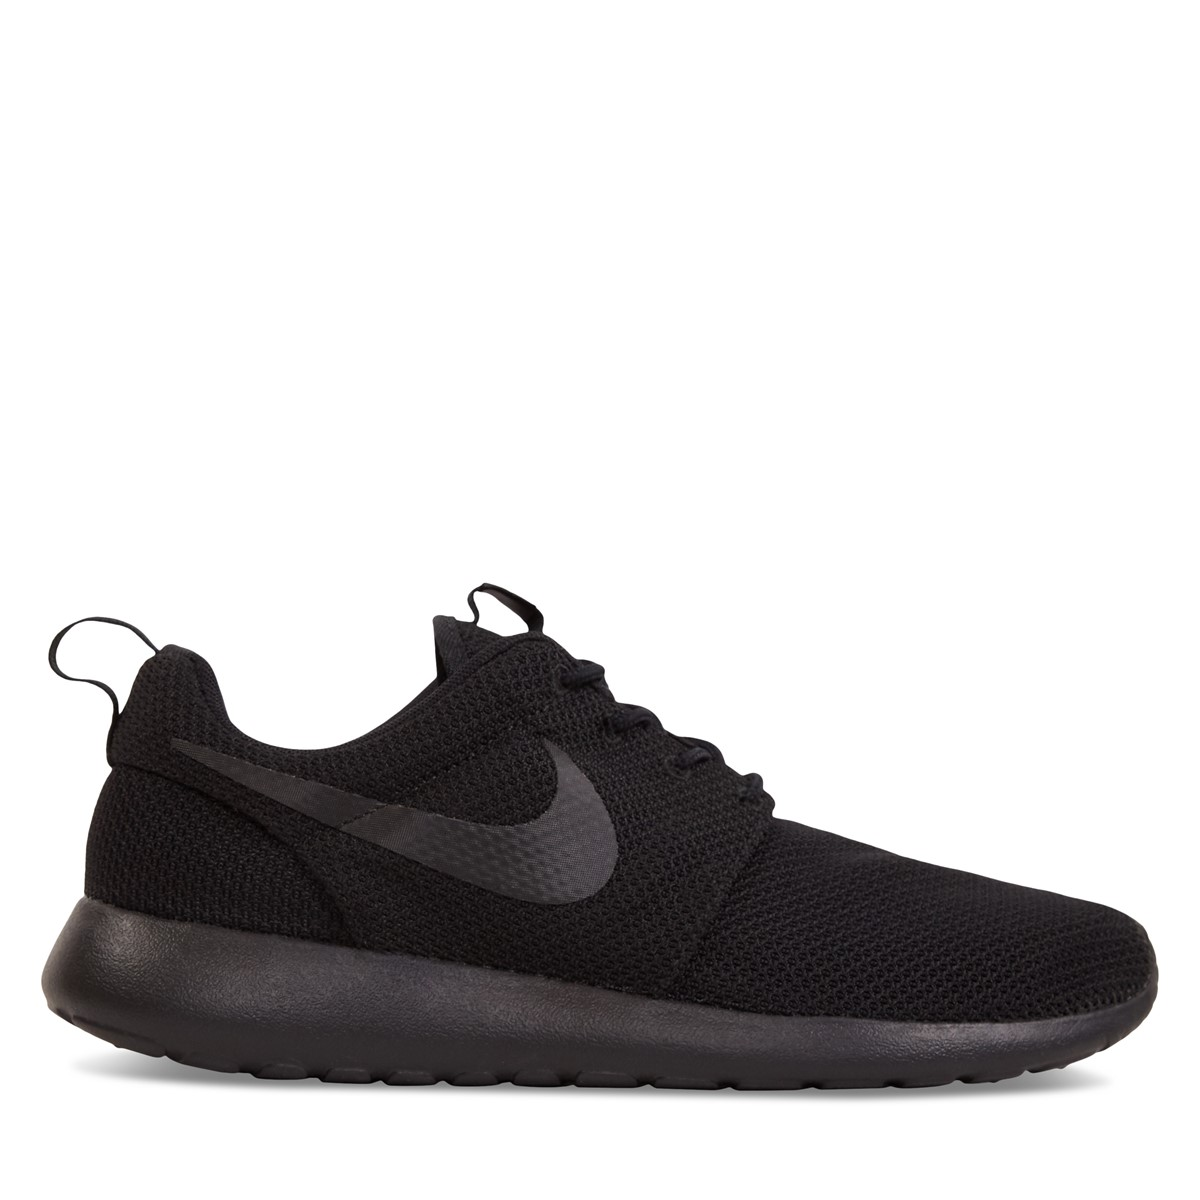 Men's Roshe Sneakers in Black